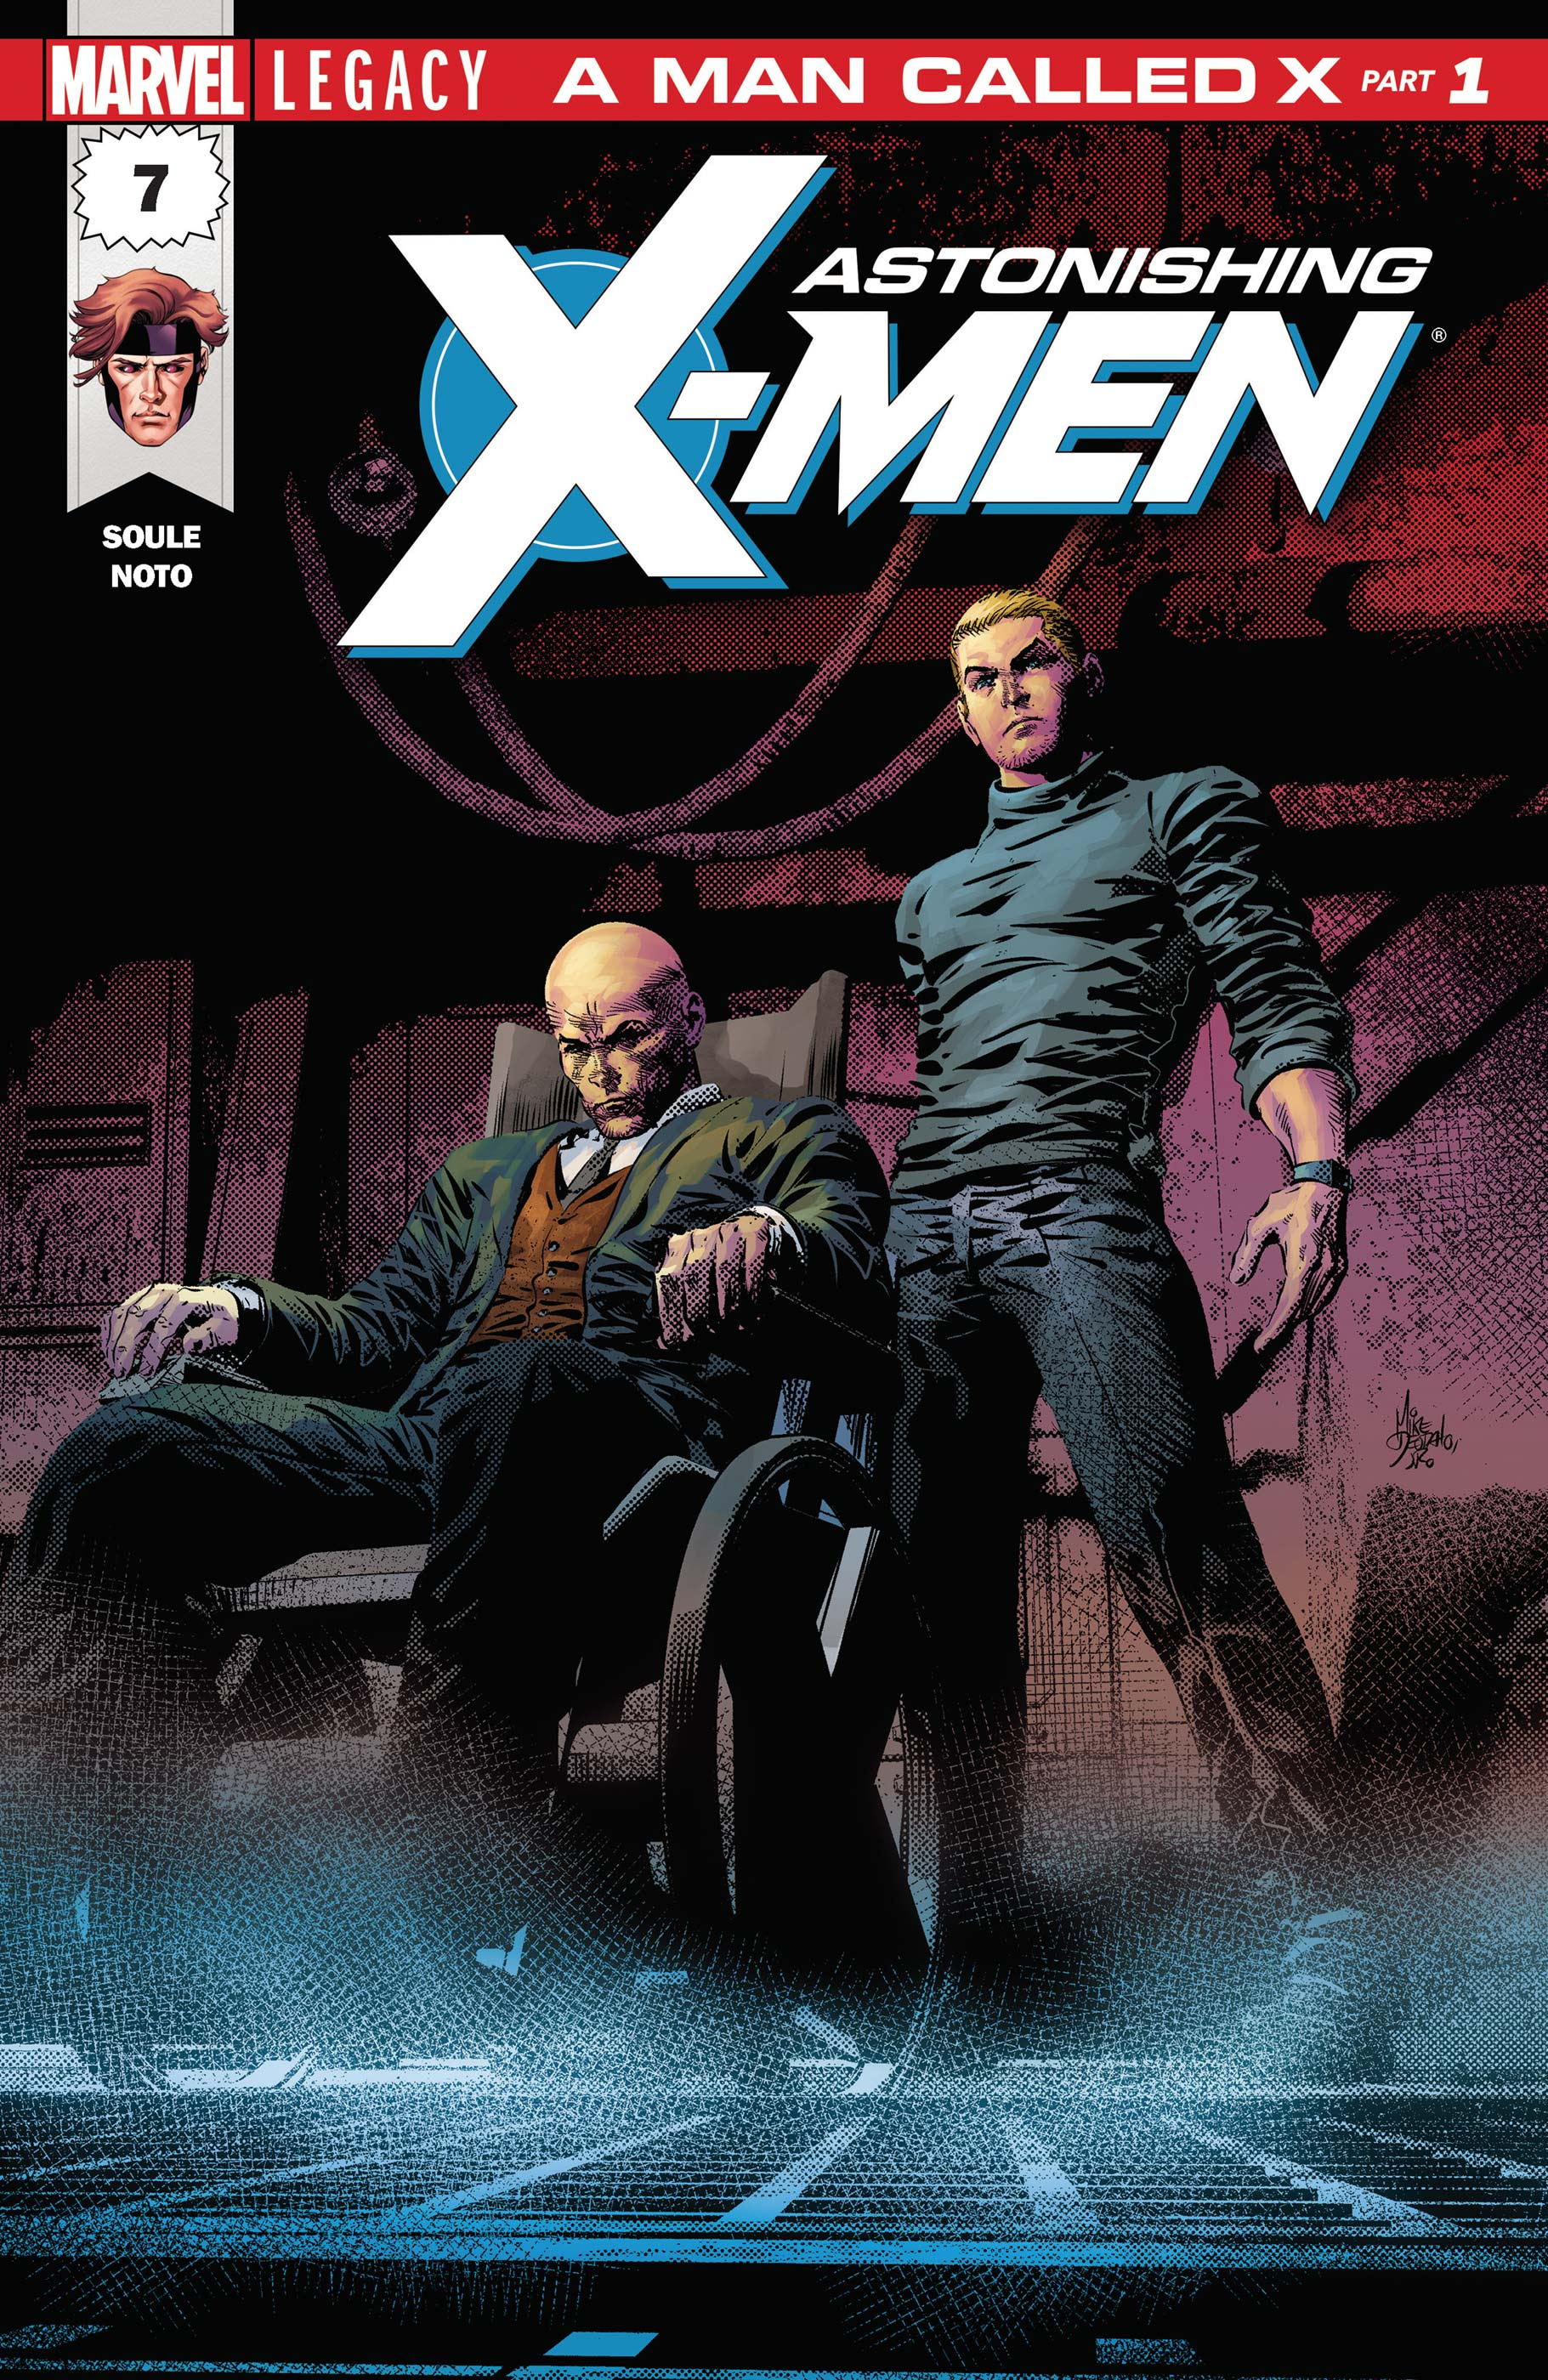 Astonishing X-Men (2017) #7